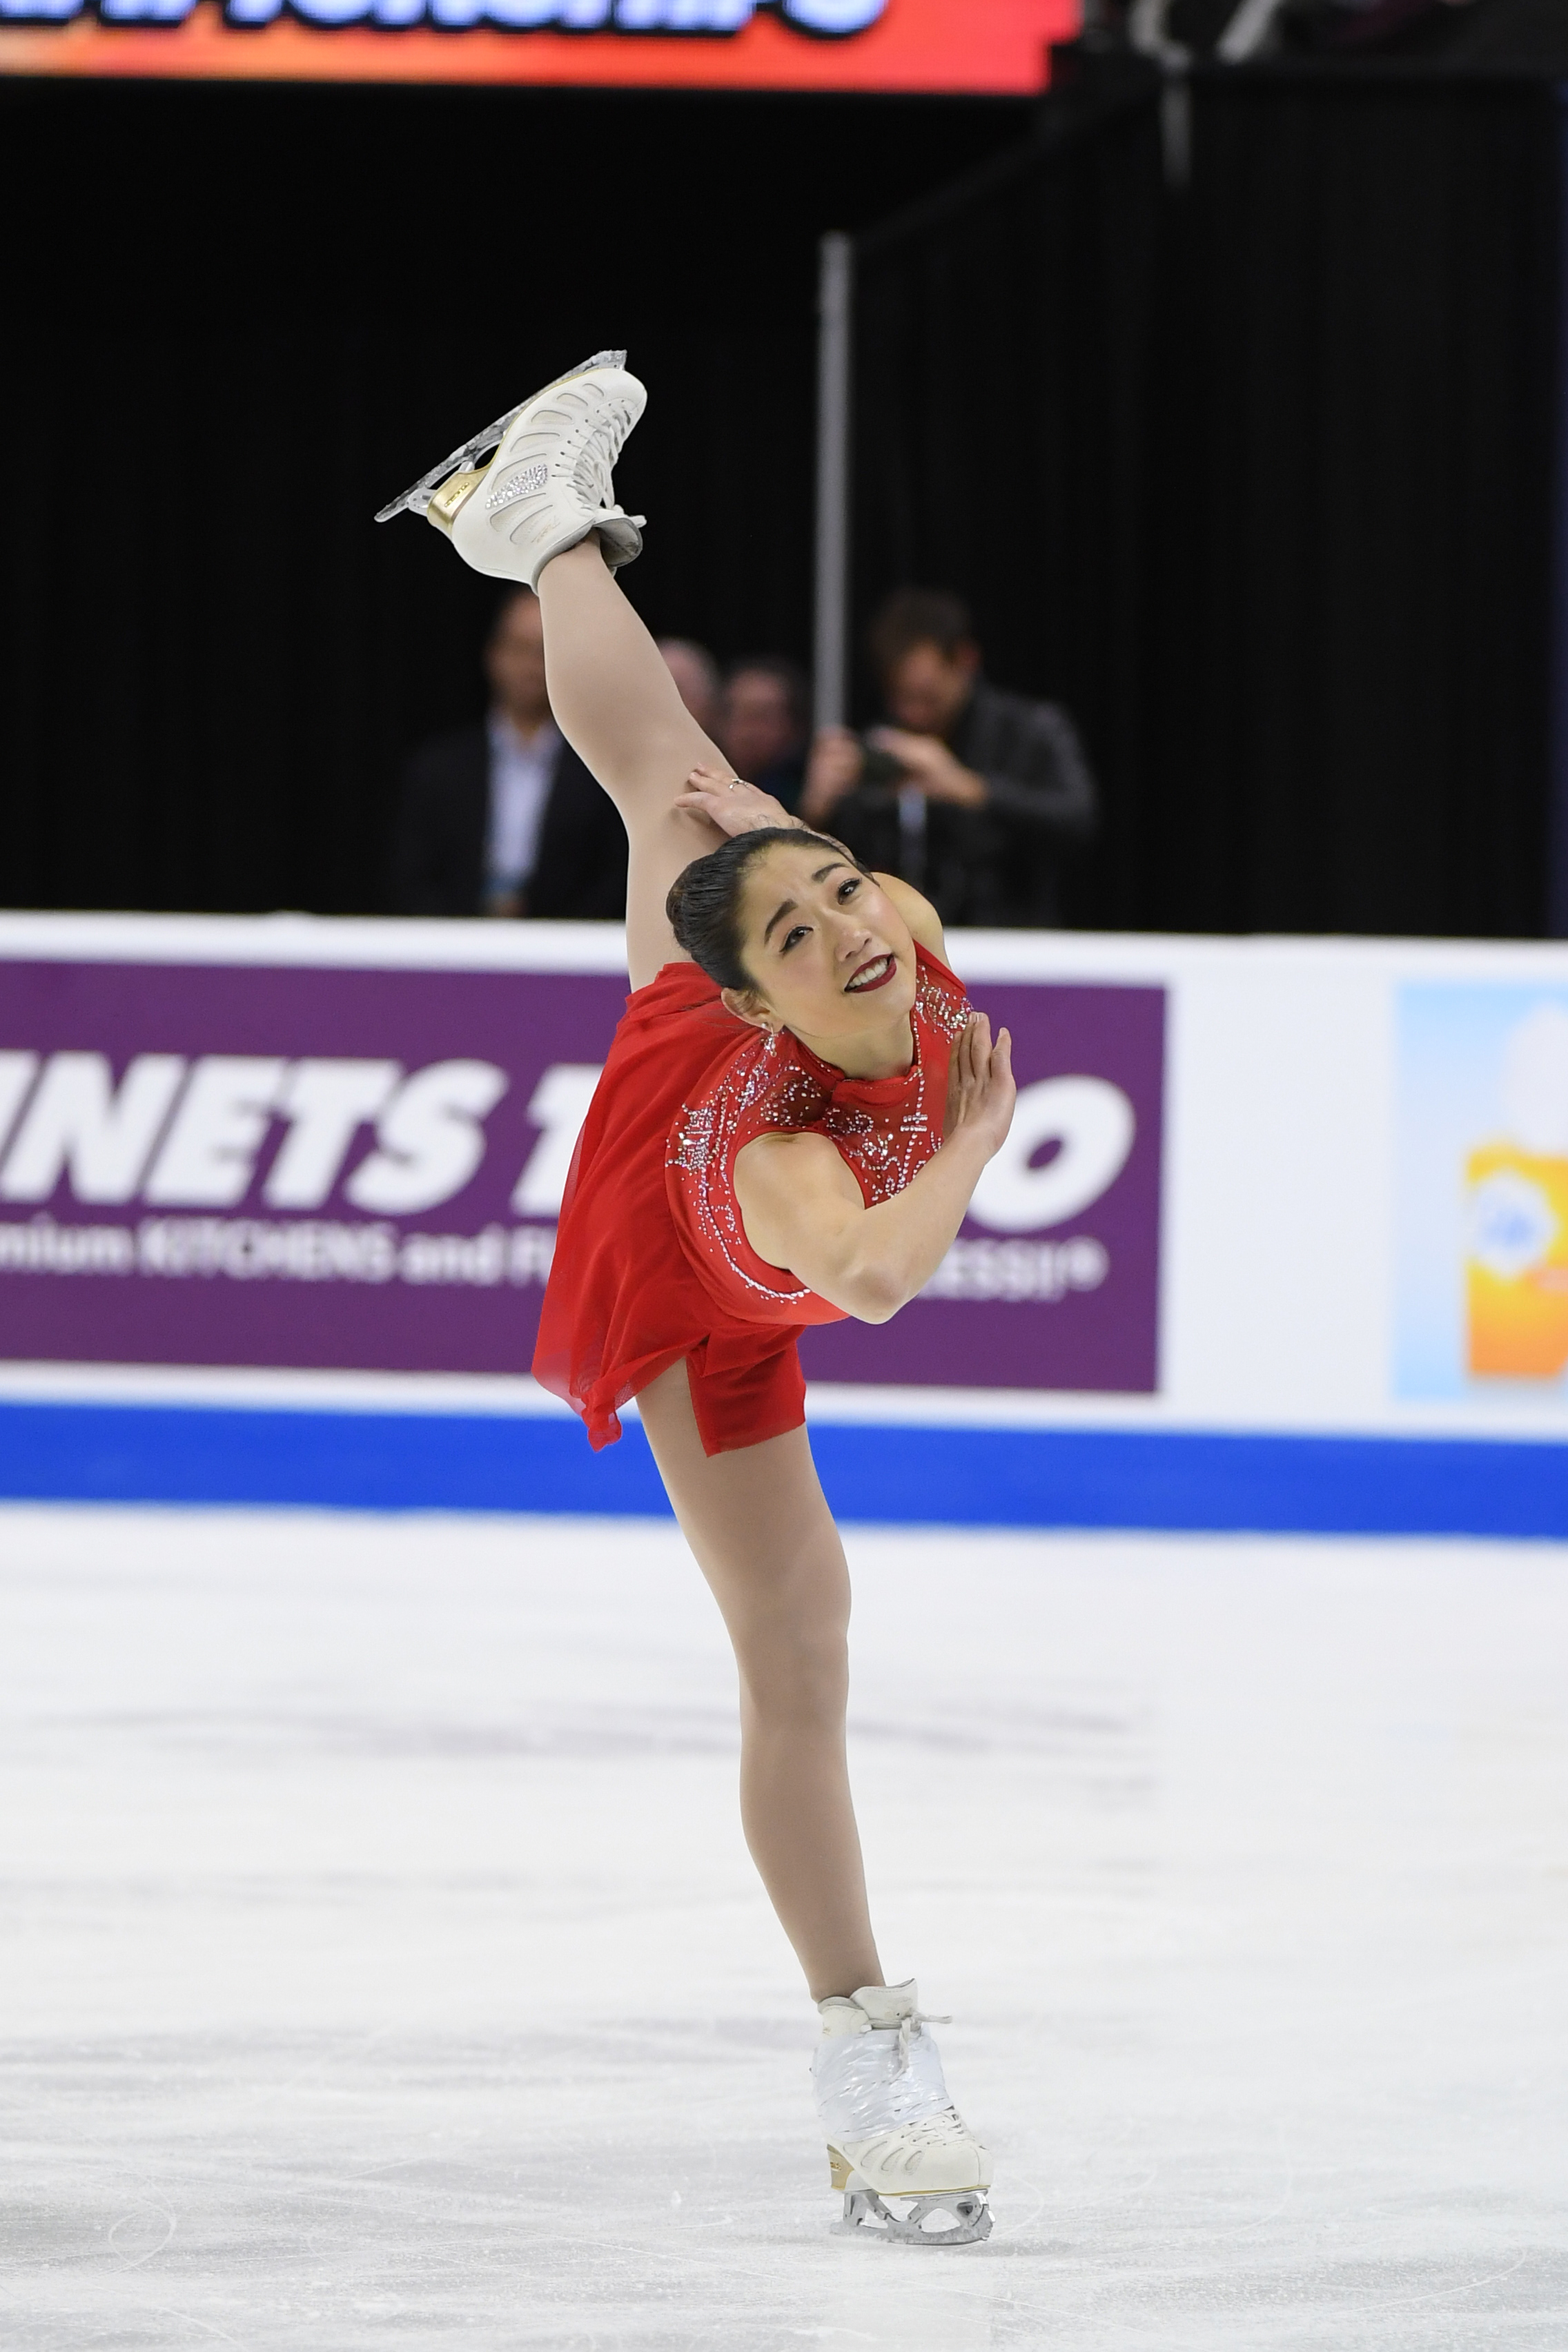 """Mirai Nagasu, 25 - Just seconds into her ladies long program routine, figure skater Mirai Nagasu became the first American woman to land the triple axel in Olympic competition, and helped the U.S. clinch the bronze in the 2018 Winter Olympics team skate event.Nagasu has accomplished a slew of impressive feats since a young age: she won gold at the U.S. Figure Skating Championships at age 14 and a few years later placed fourth at the 2010 Vancouver Olympics. The 2018 Olympics in Pyeongchang, South Korea, were a sort-of redemption for Nagasu, as she had to vigorously train and earn her spot after being left off the 2014 Winter Olympics roster in Sochi.""""It's not easy to go out there and perform by myself and be put in the spotlight, but it's something I love,"""" Nagasu says. Reflecting on wisdom she has gained, Mirai presents sound advice: """"To my younger self, I would say, """"Don't give up. Keep believing."""" — M.Y.Image Credit:Jay Adeff/U.S. Figure Skating"""